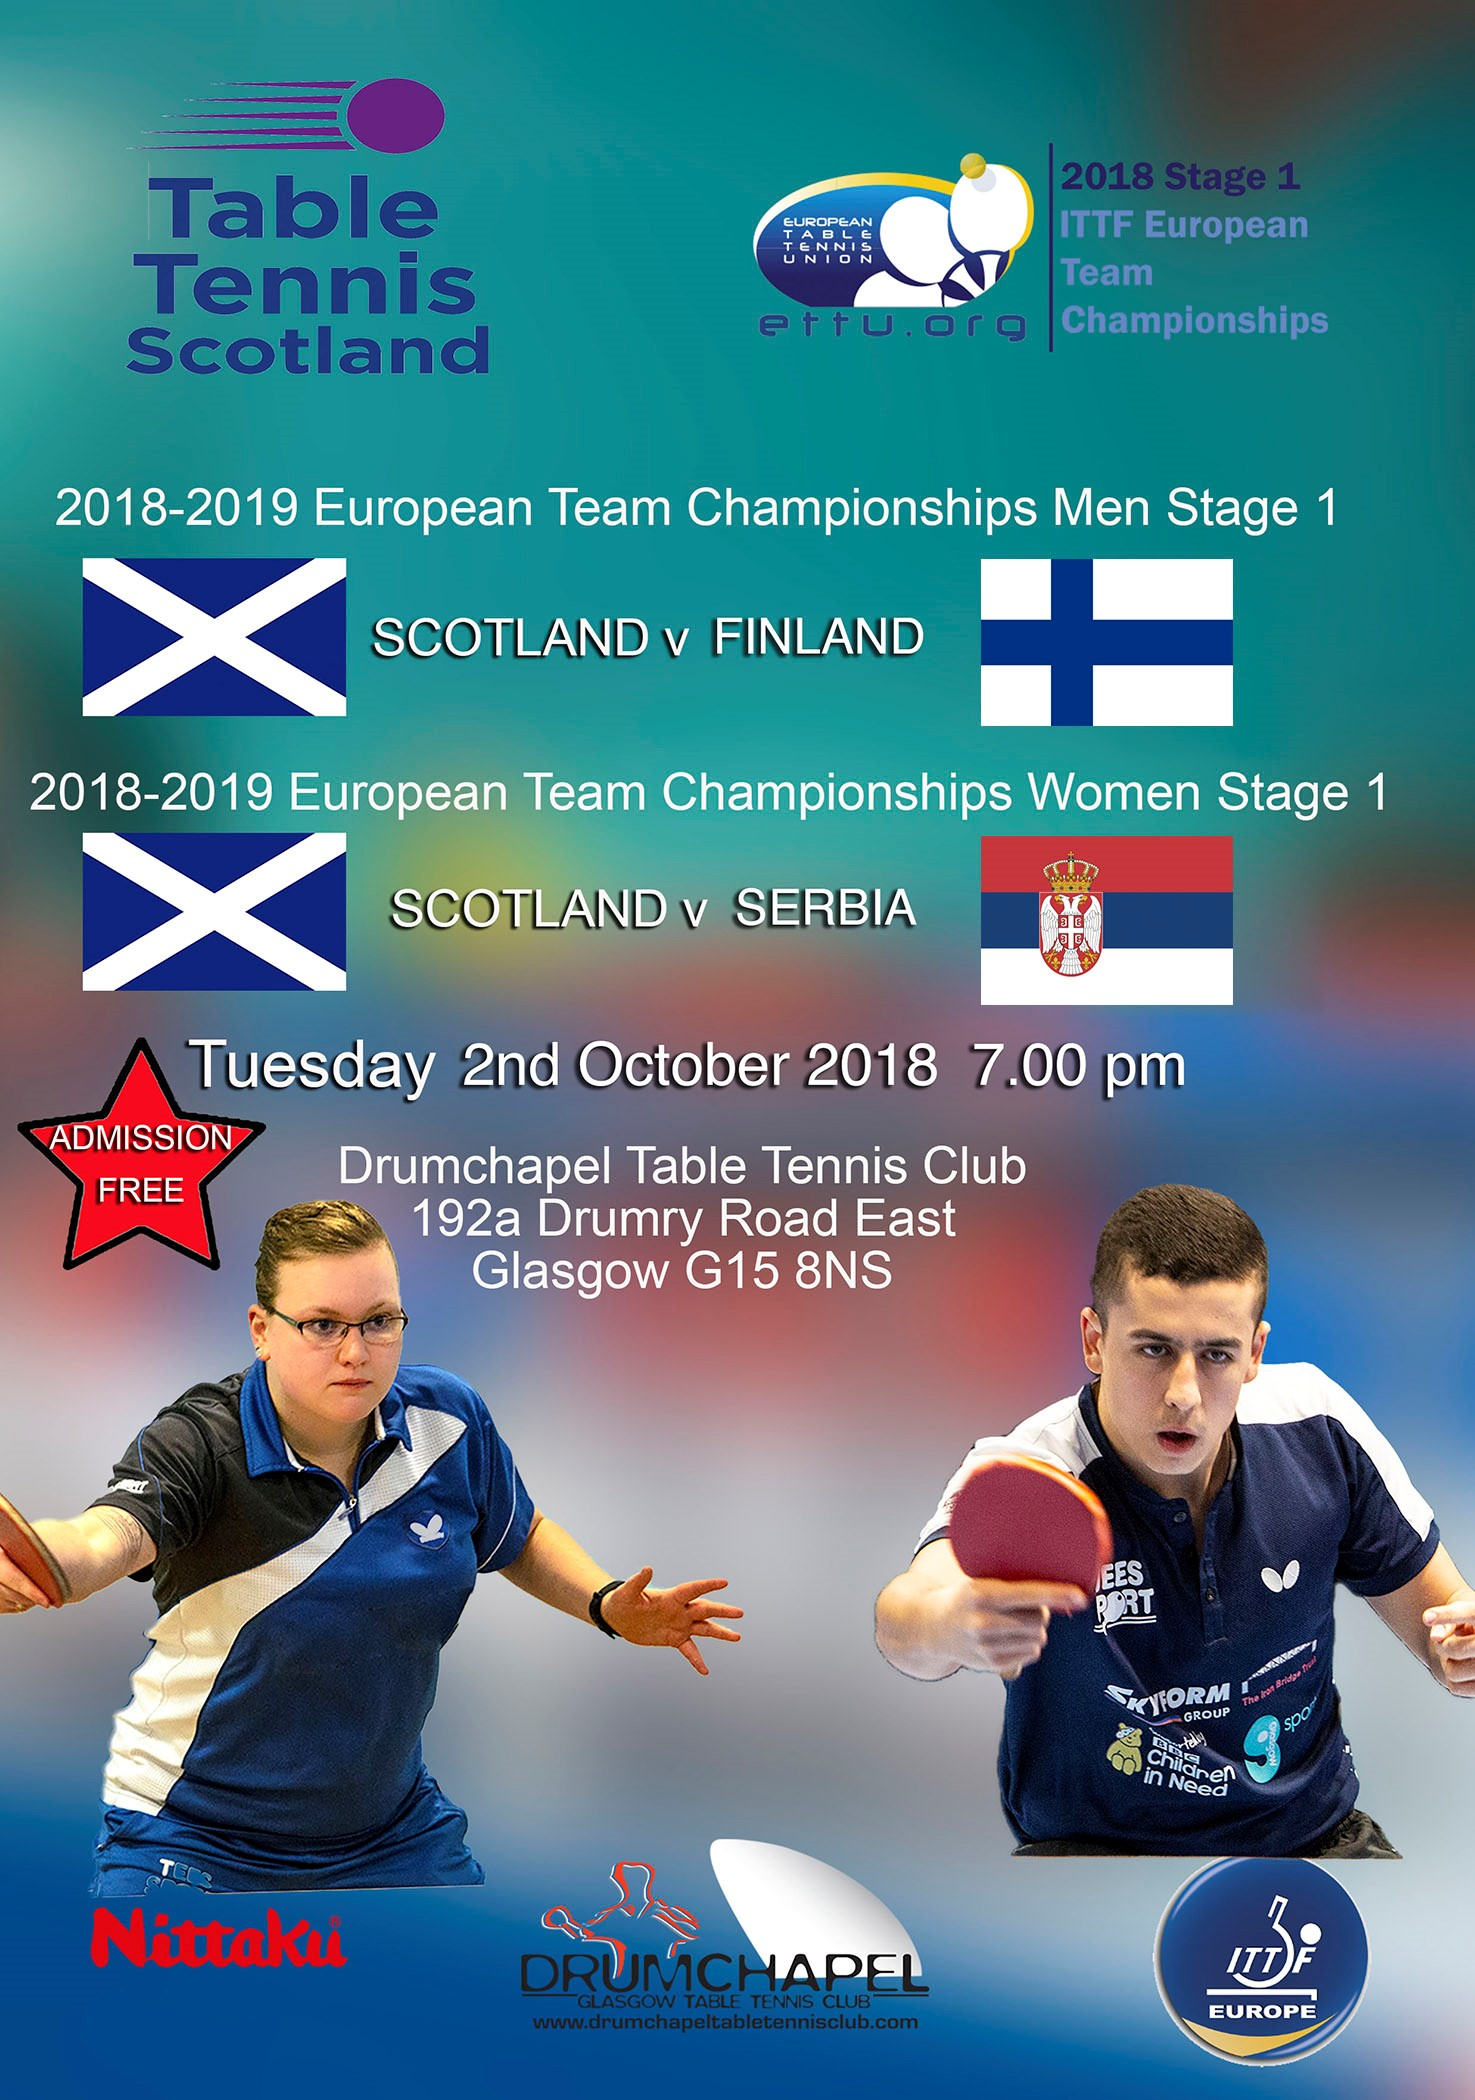 European Team Championship Matches Tuesday 2nd October Drumchapel